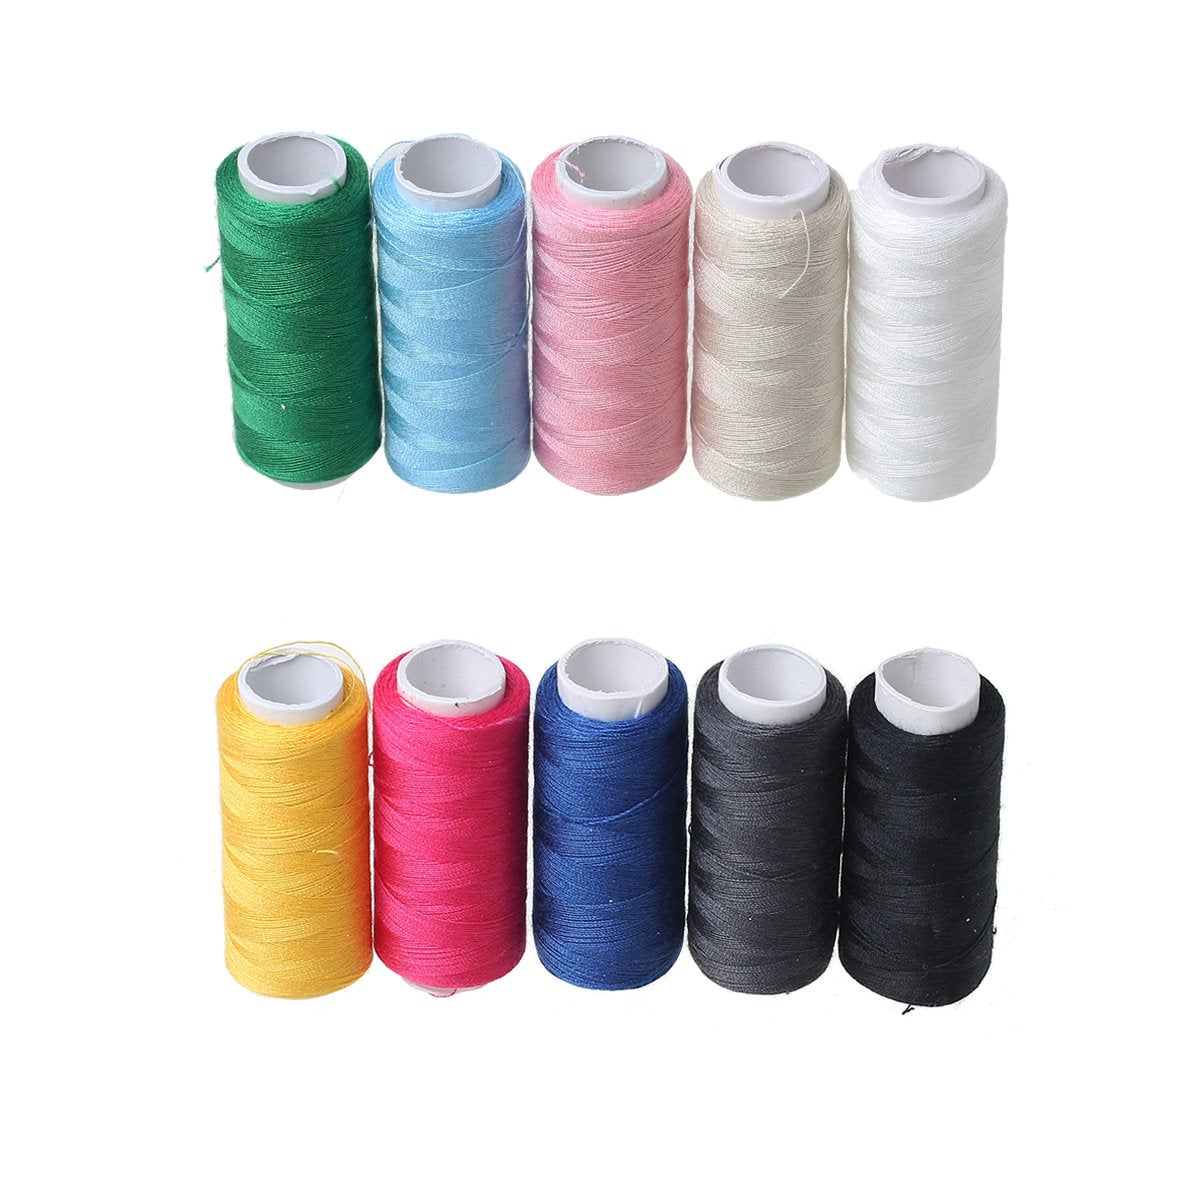 Sewing Thread - Multi Color - Polyester